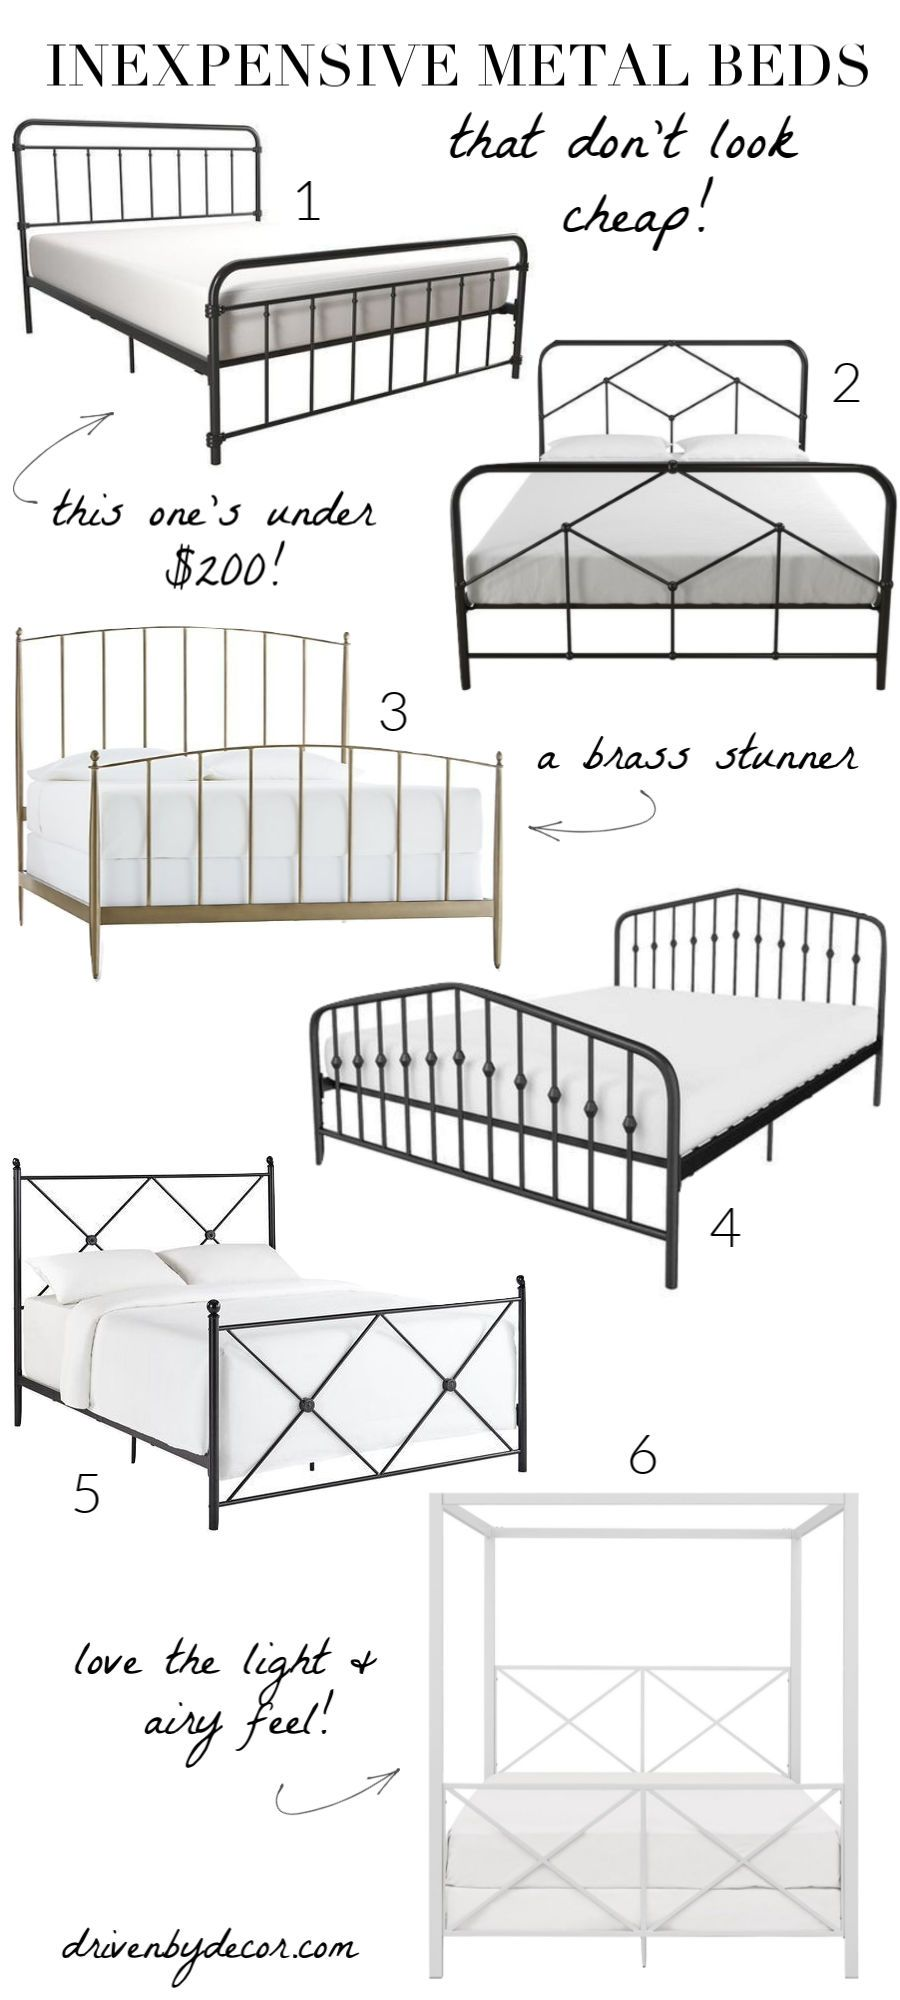 cheap metal bed frame on my favorite inexpensive beds that don t look cheap driven by decor metal beds iron metal bed iron bed pinterest